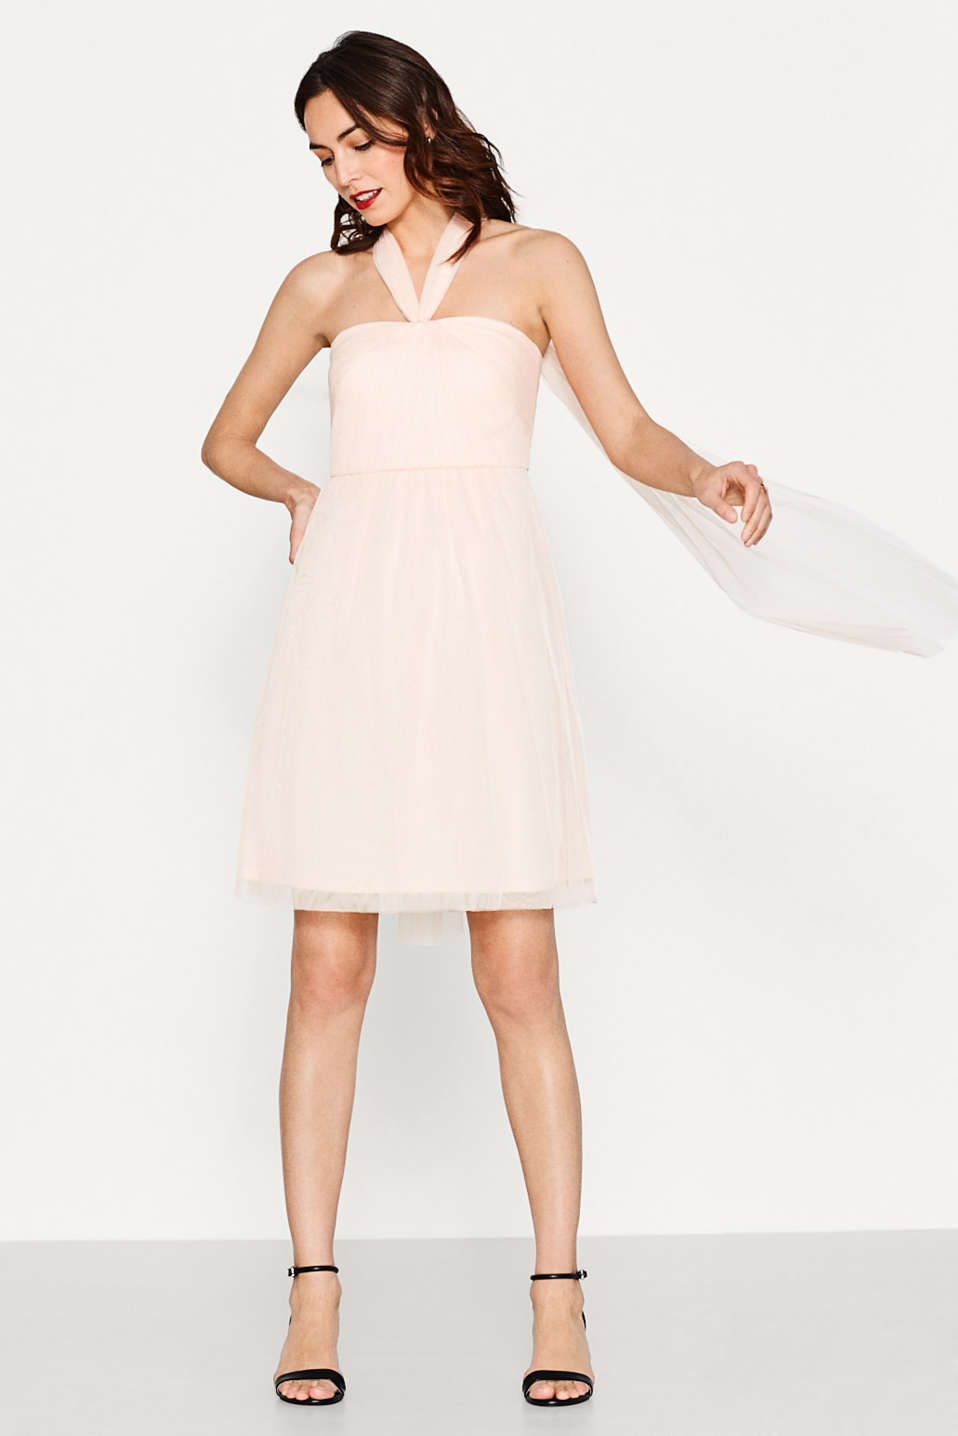 Esprit - Delicate tulle dress in a versatile look